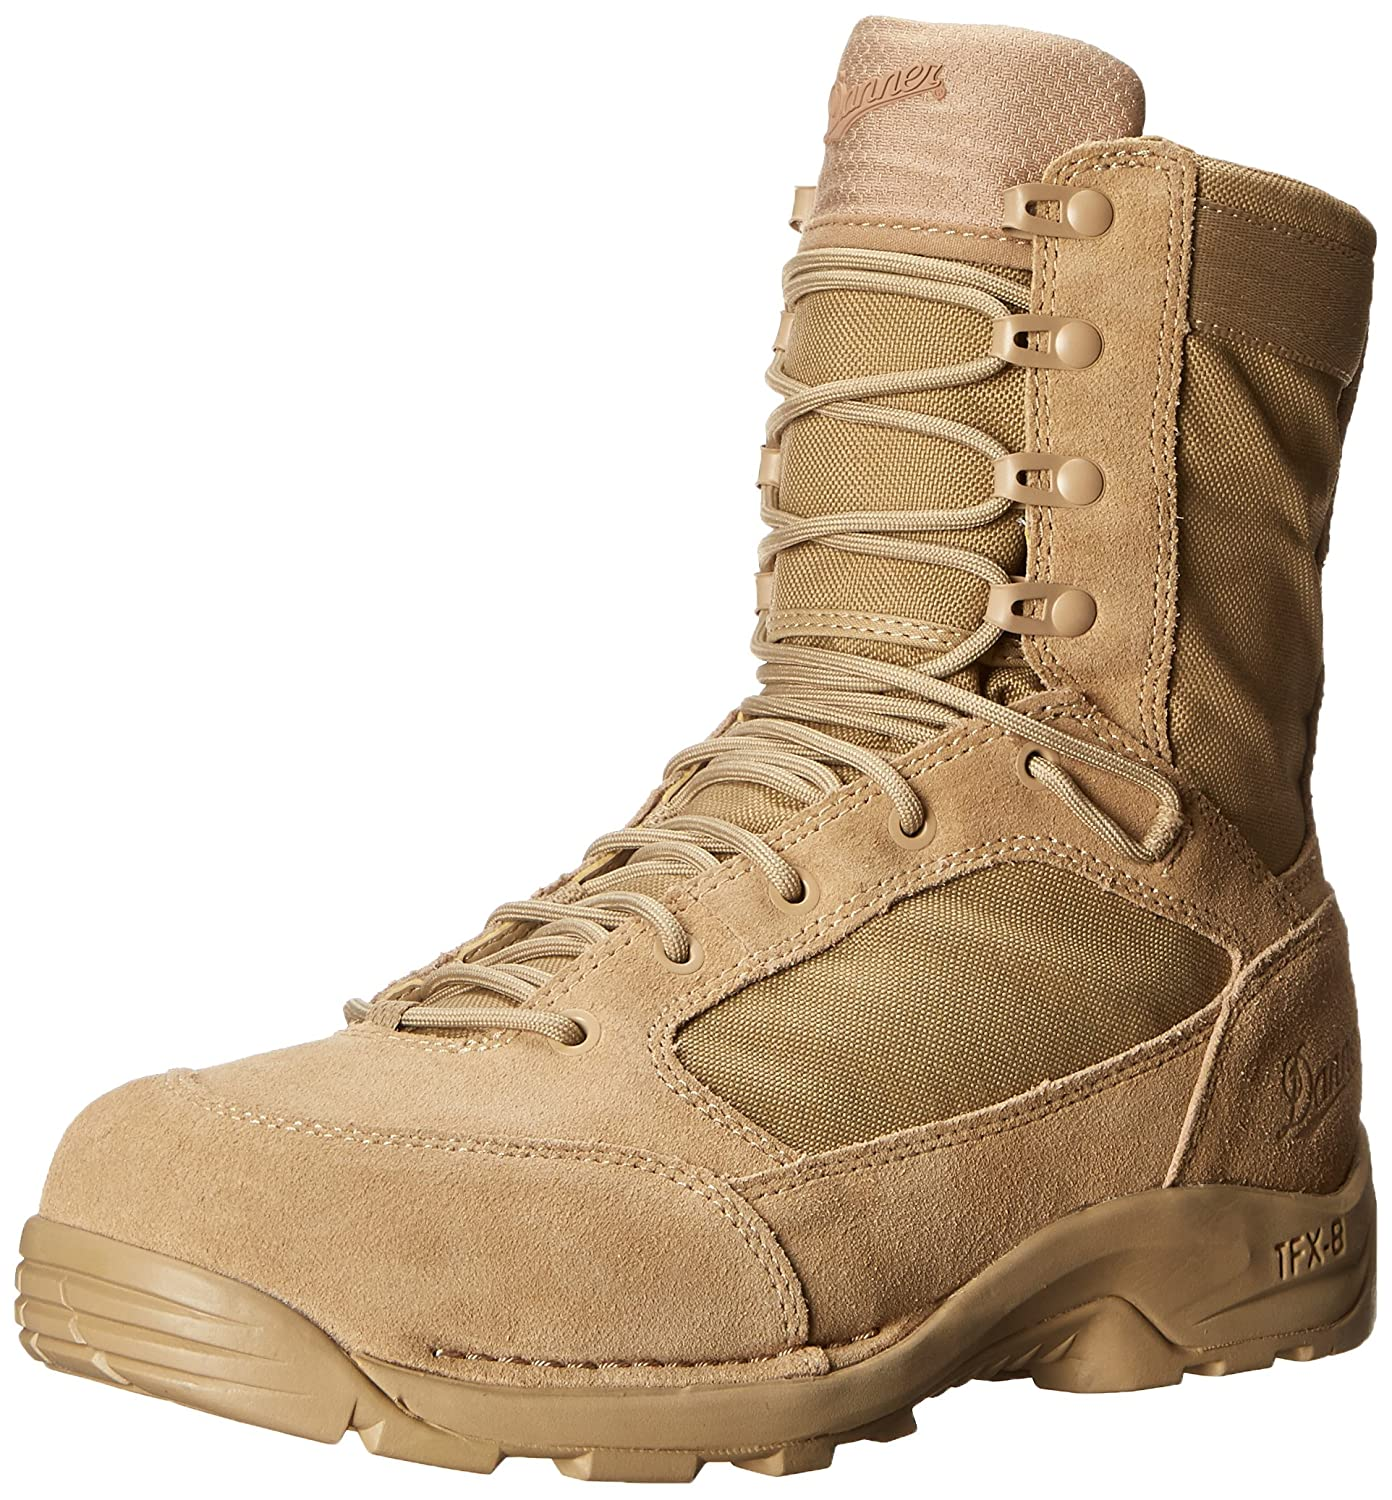 Amazon.com: Danner Men's Desert TFX G3 8-Inch Duty Boot: Shoes